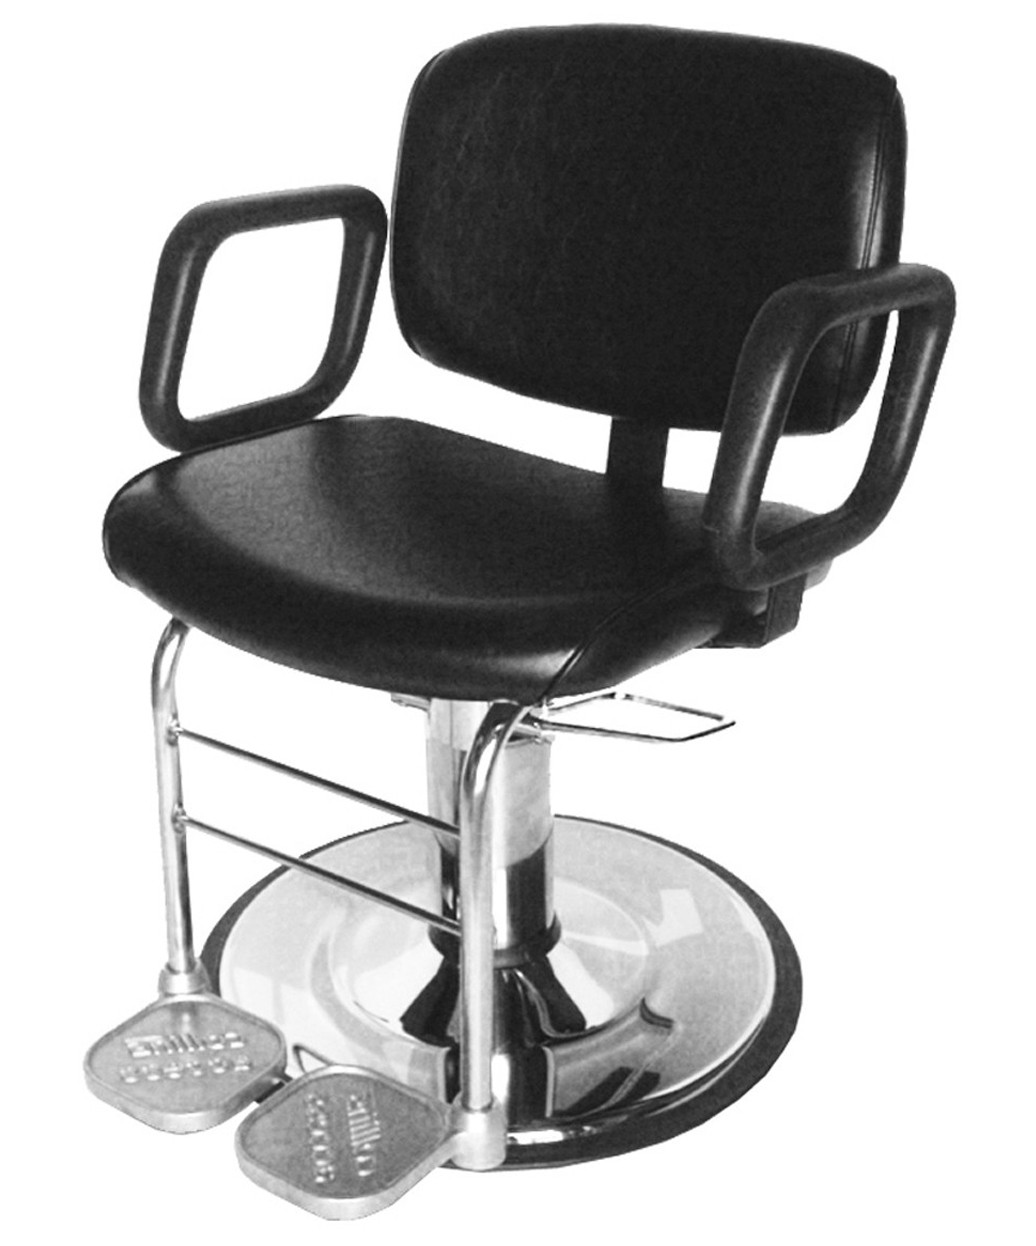 7710E Access All Purpose Chair